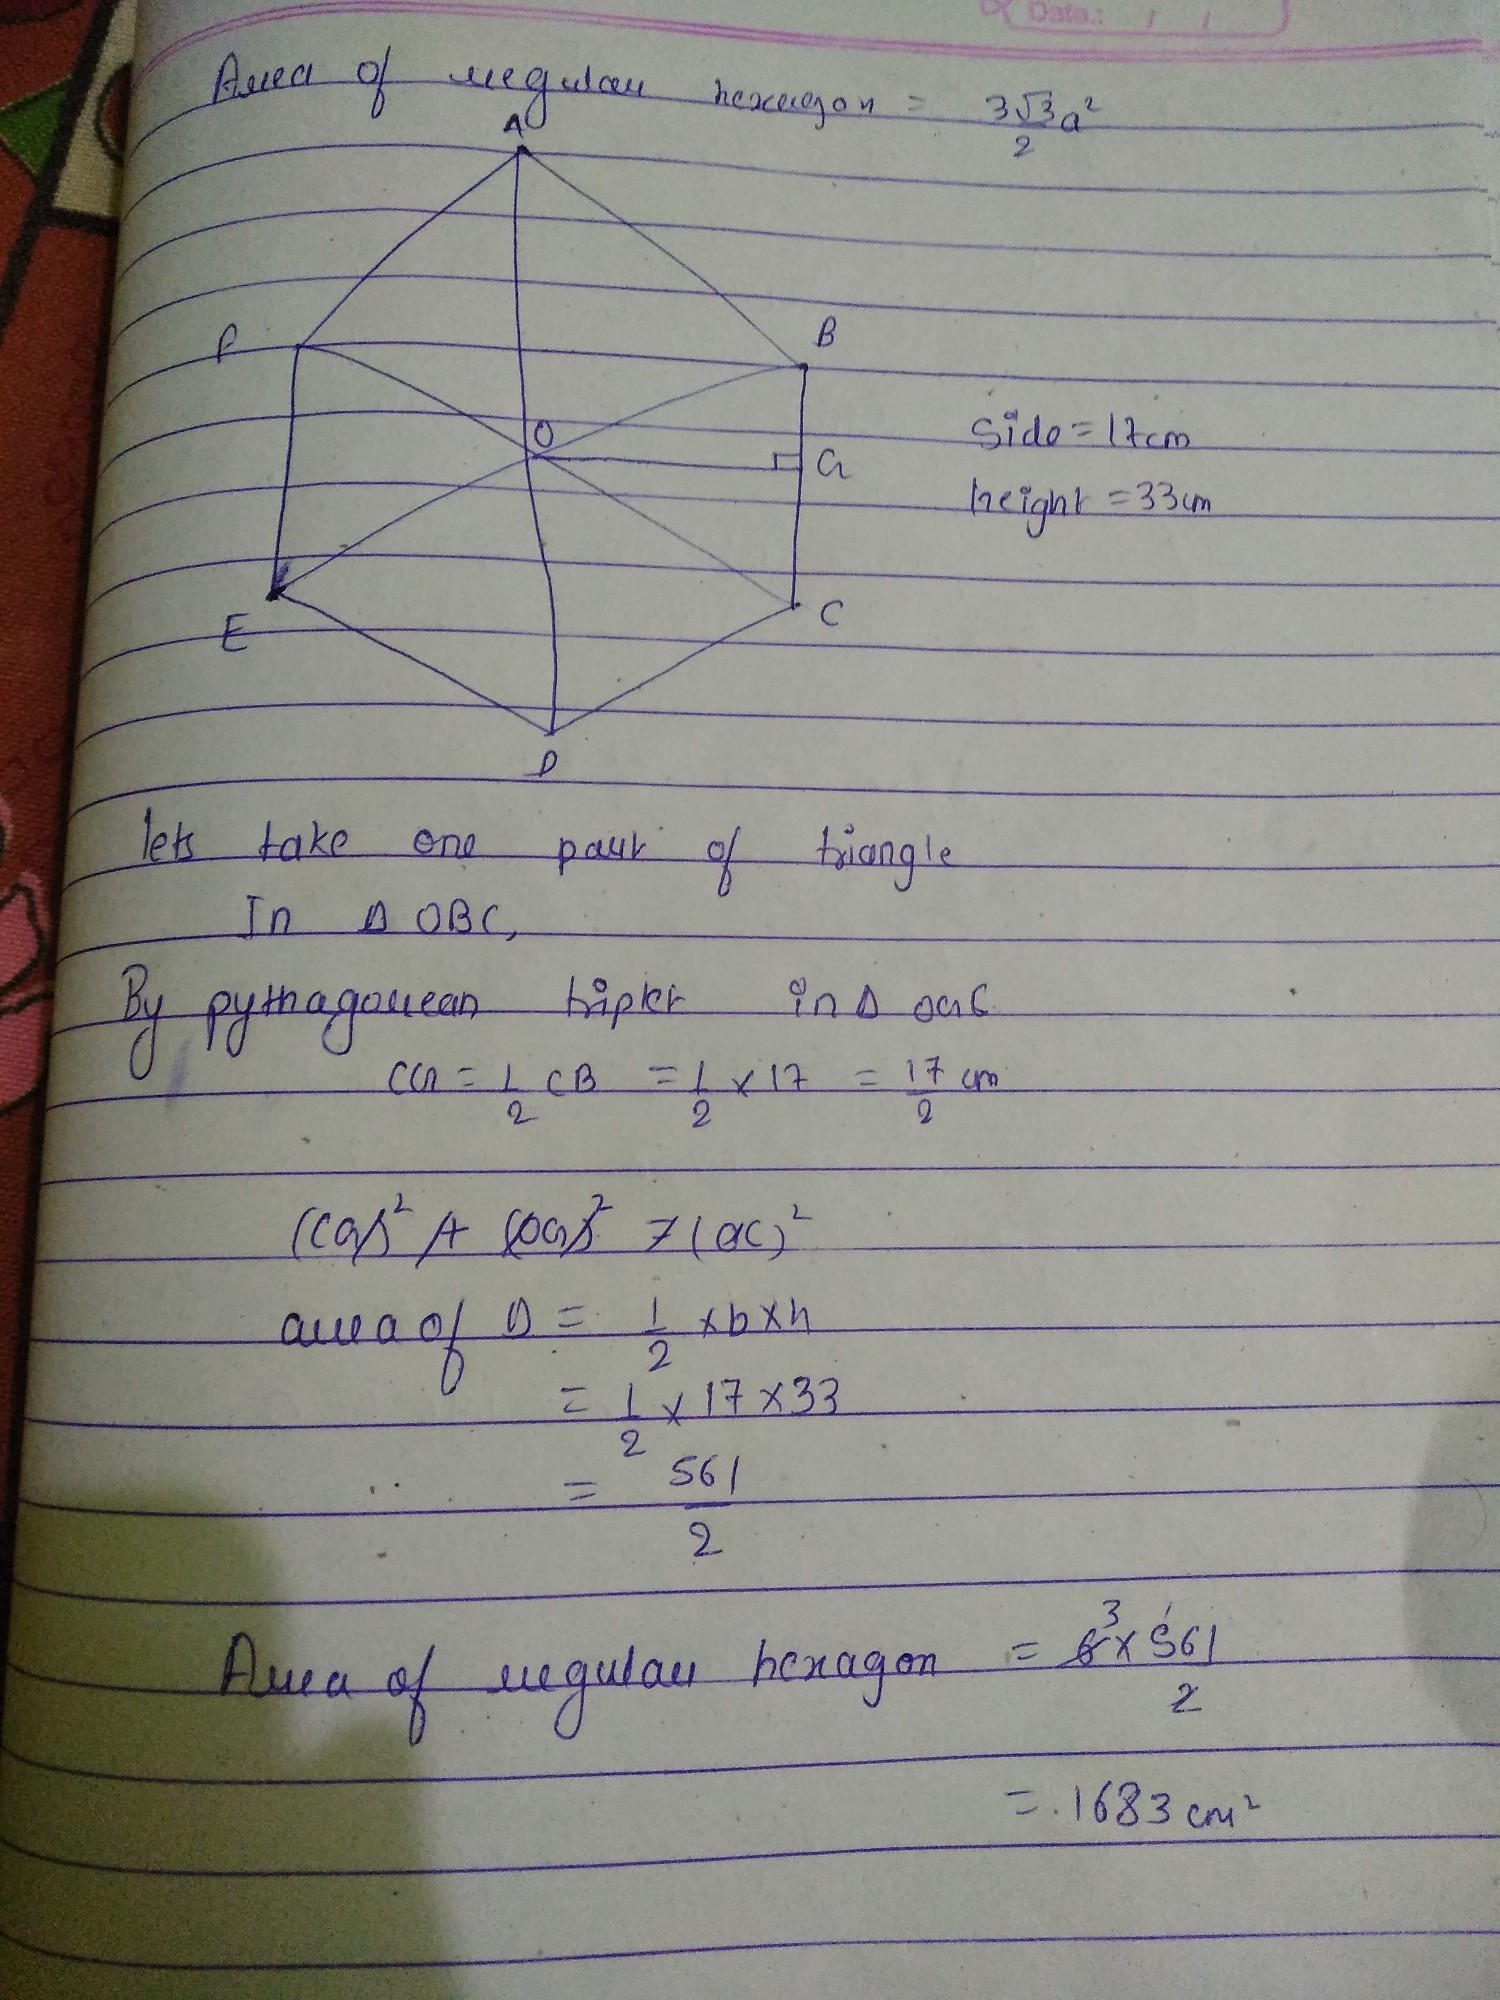 Find area of a regular hexagon whose one side is 17 cm and it's